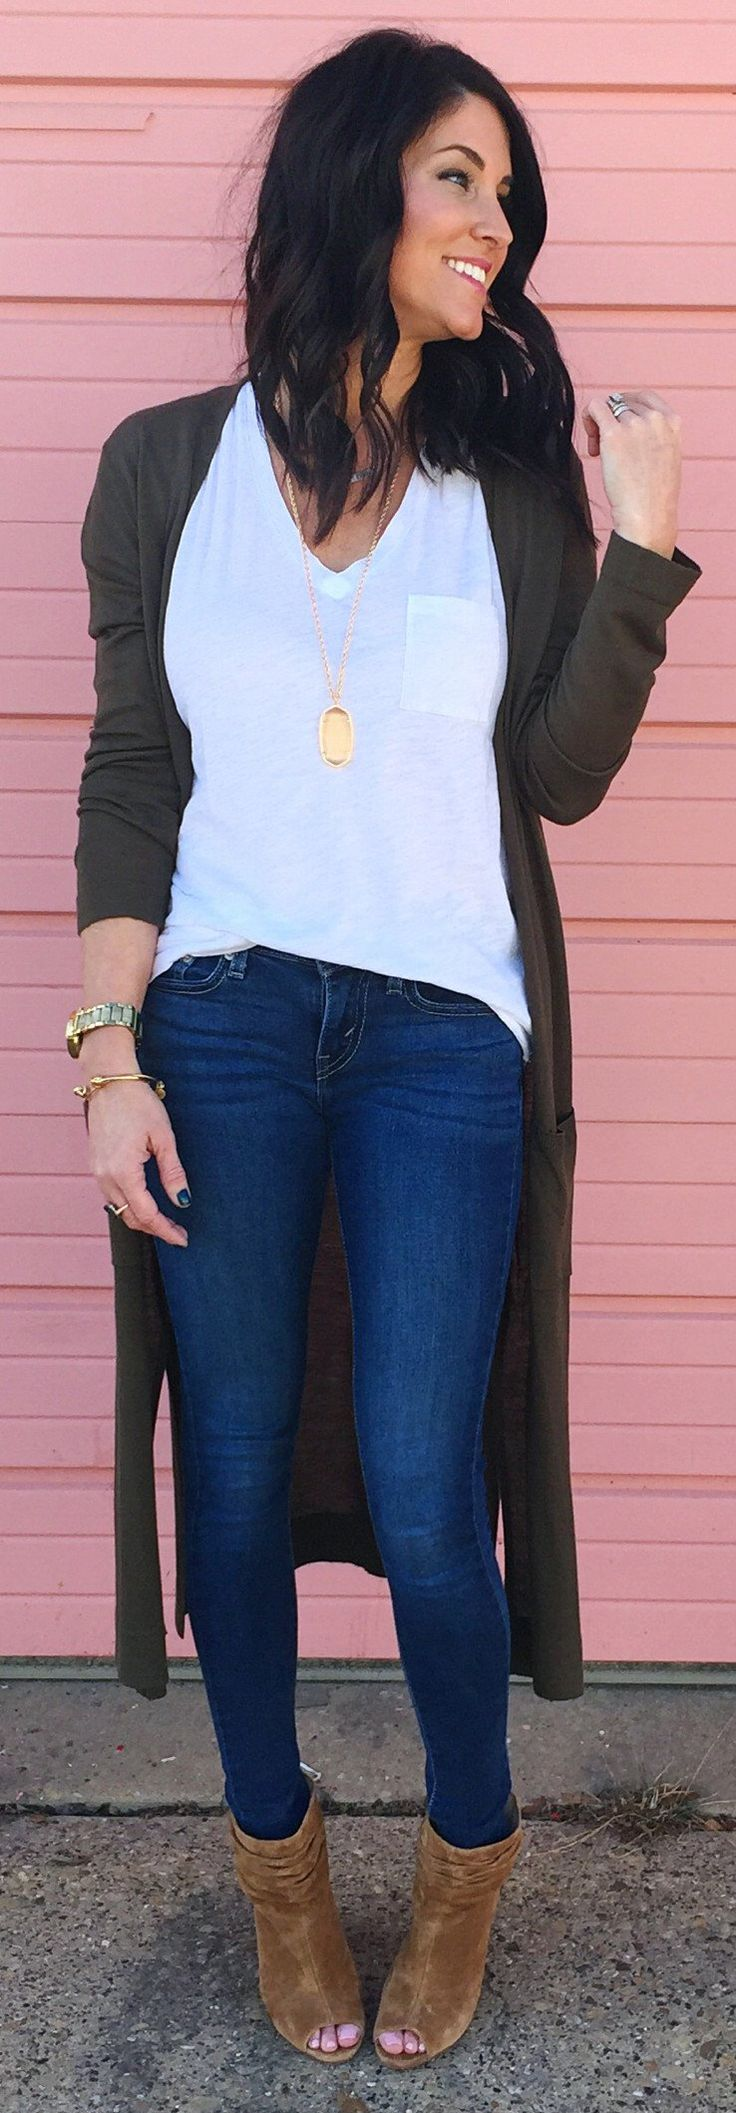 Black t shirt light blue jeans -  Winter Fashion Dark Maxi Cardigan Navy Skinny Jeans White Tee